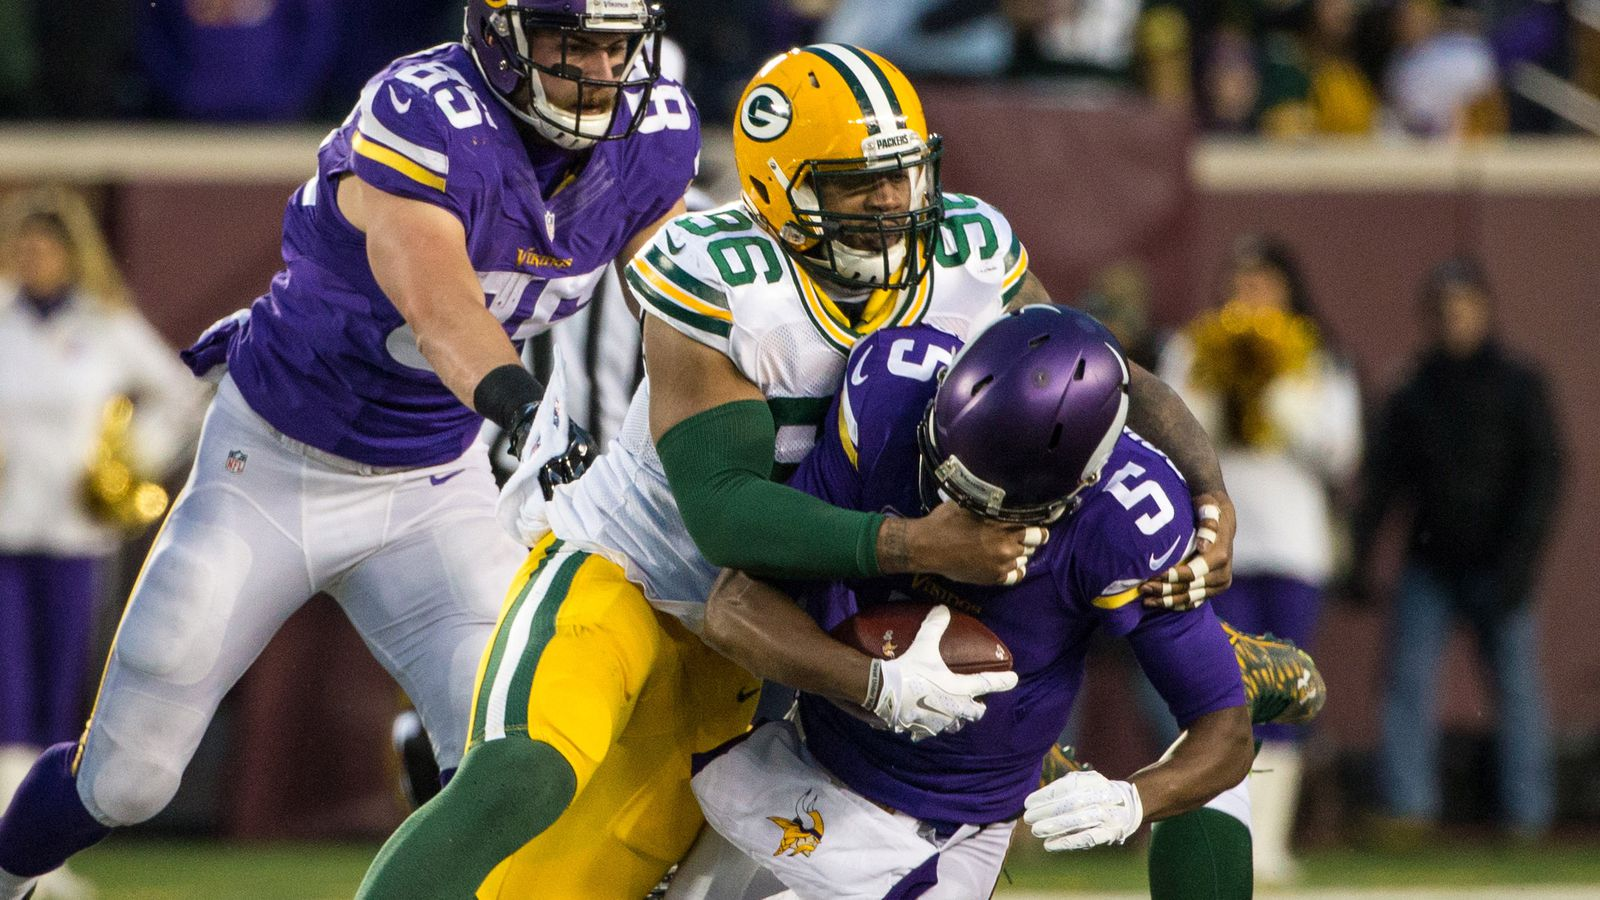 Game photos: packers at redskins